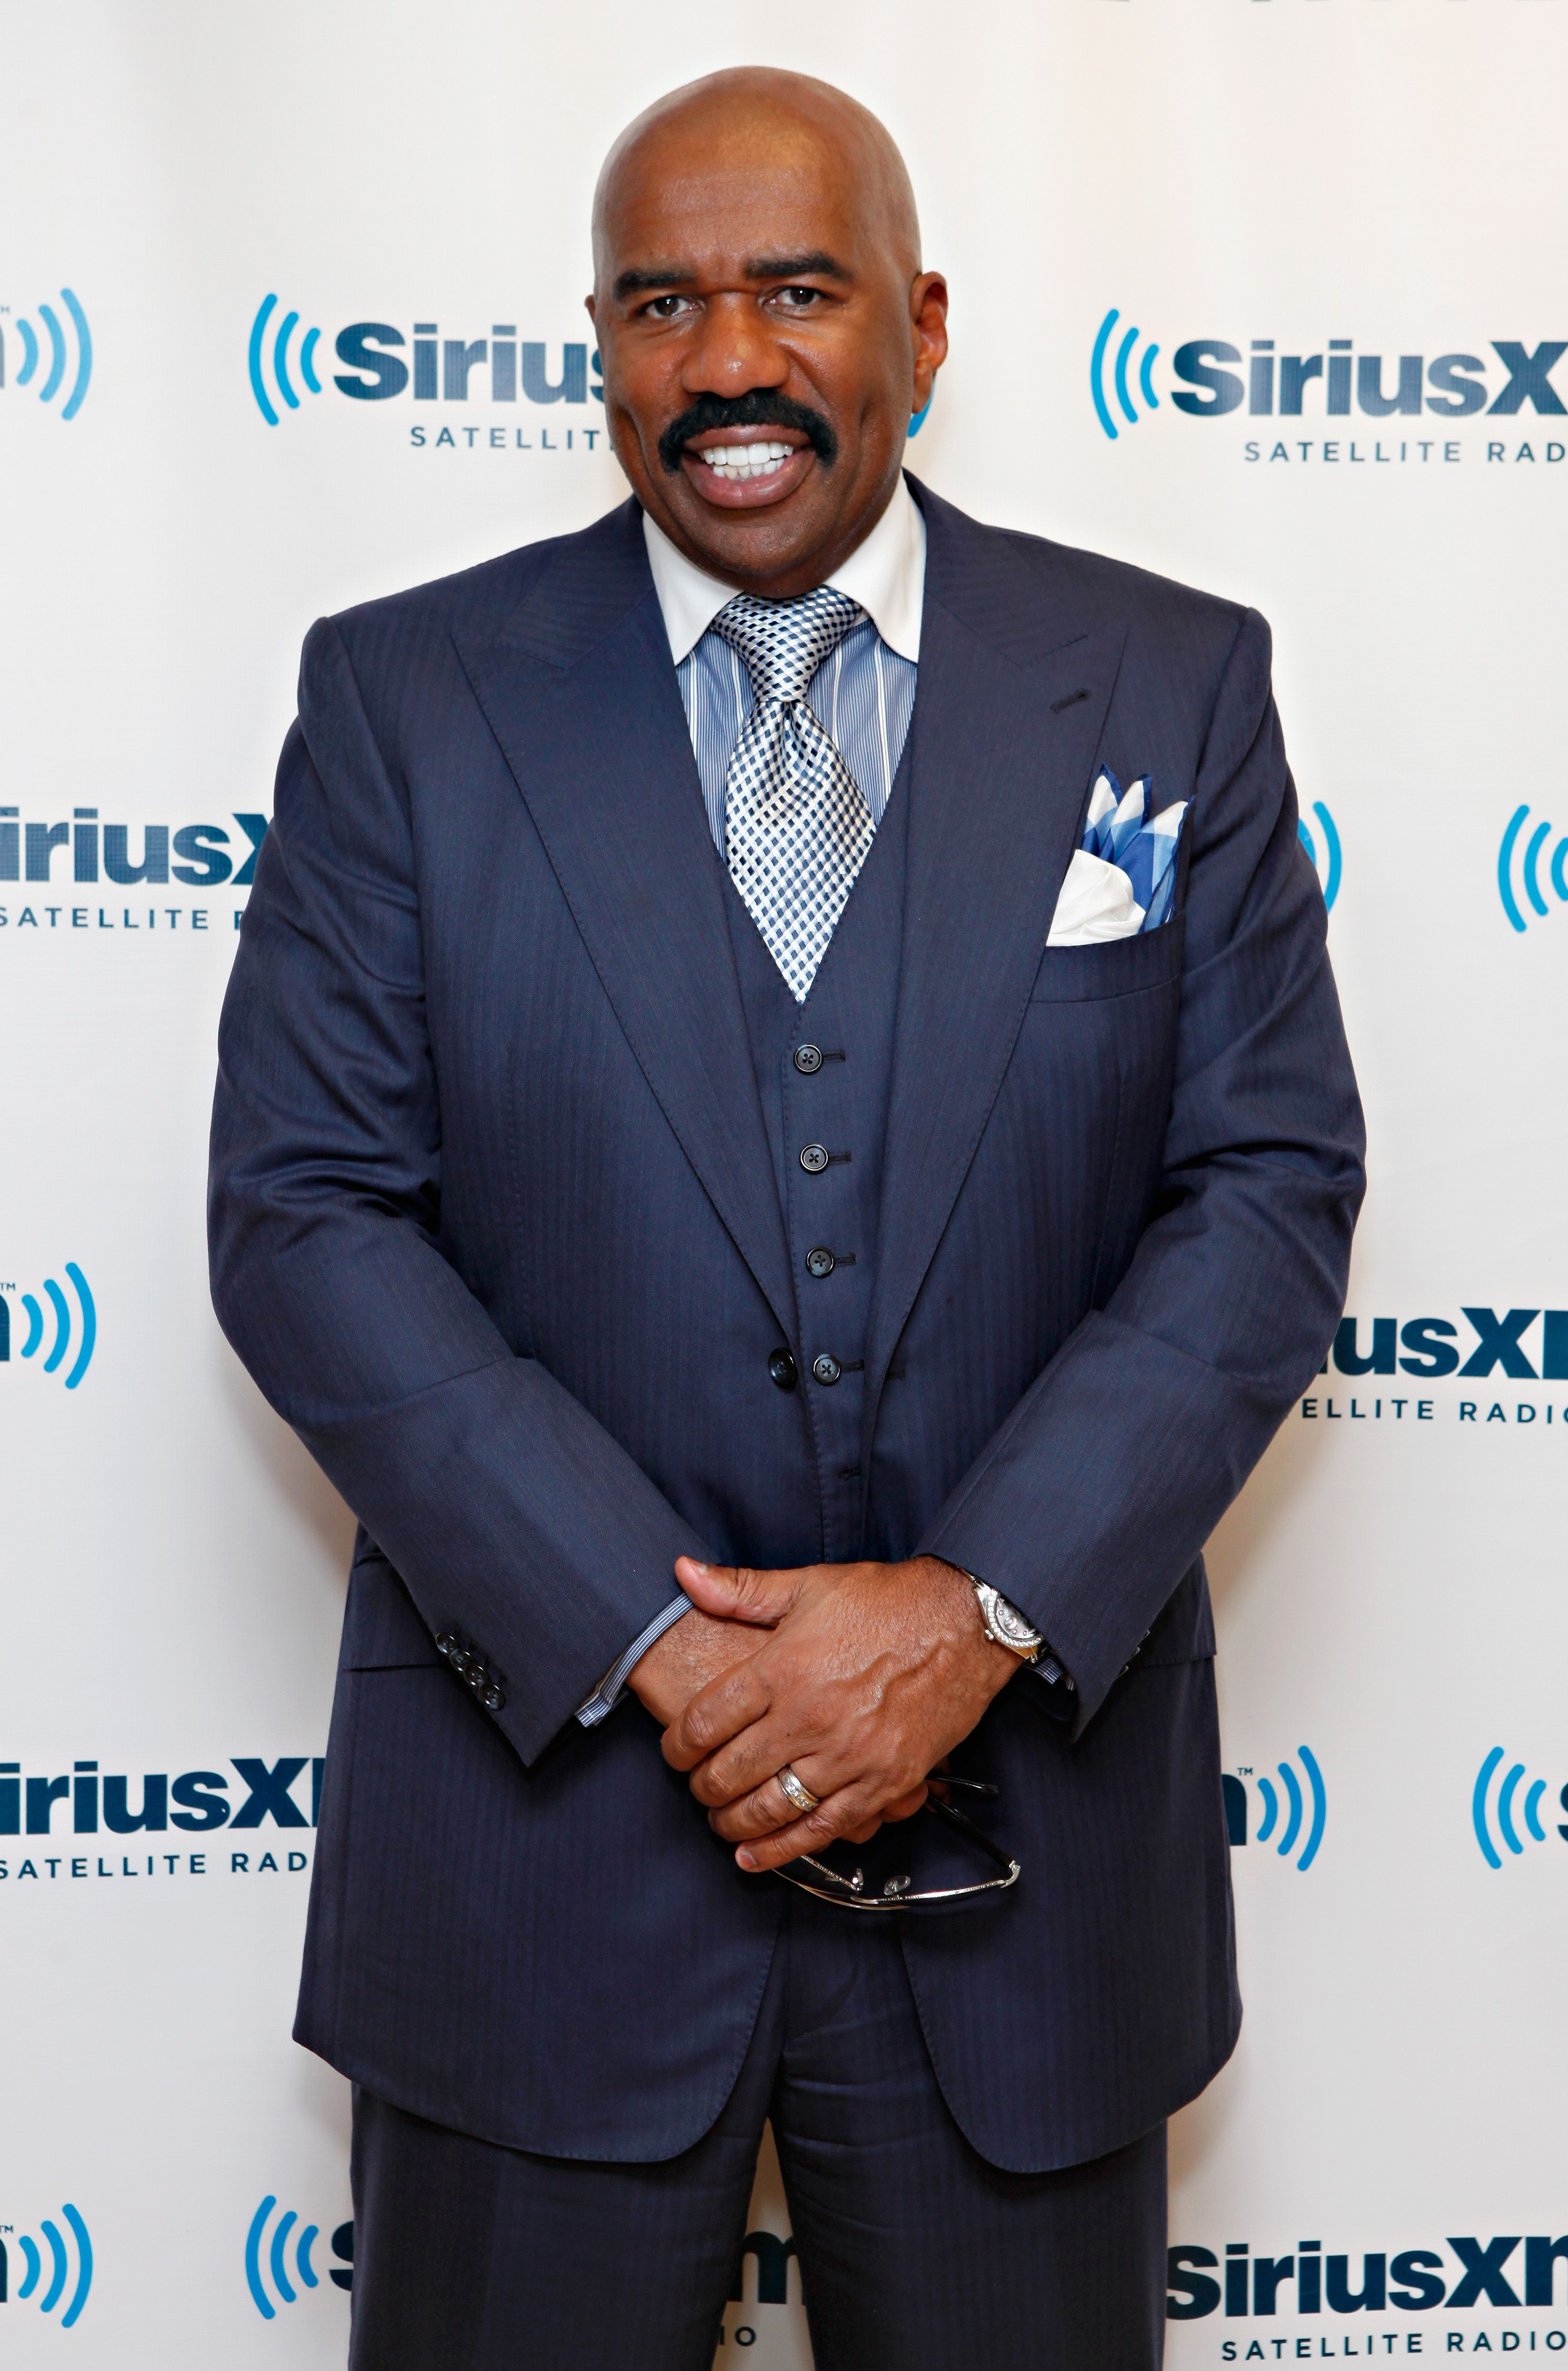 Steve Harvey at the SiriusXM Studio on August 29, 2012 in New York City. | Source: Getty Images